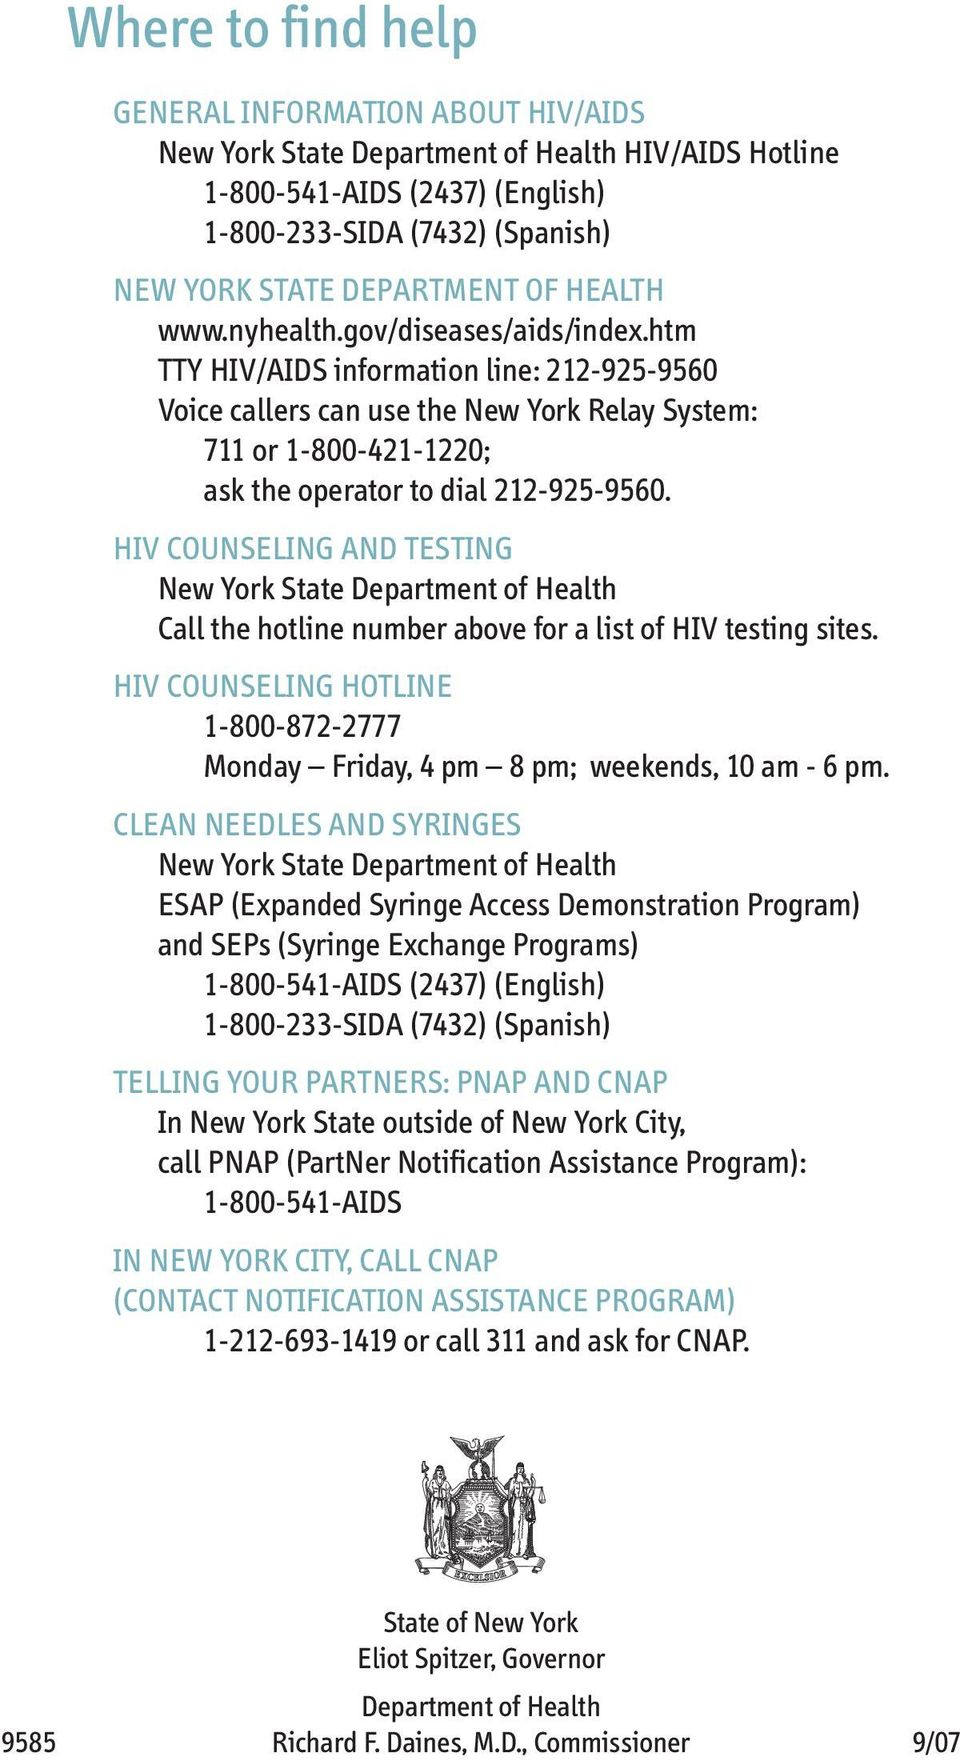 htm TTY HIV/AIDS information line: 212-925-9560 Voice callers can use the New York Relay System: 711 or 1-800-421-1220; ask the operator to dial 212-925-9560.